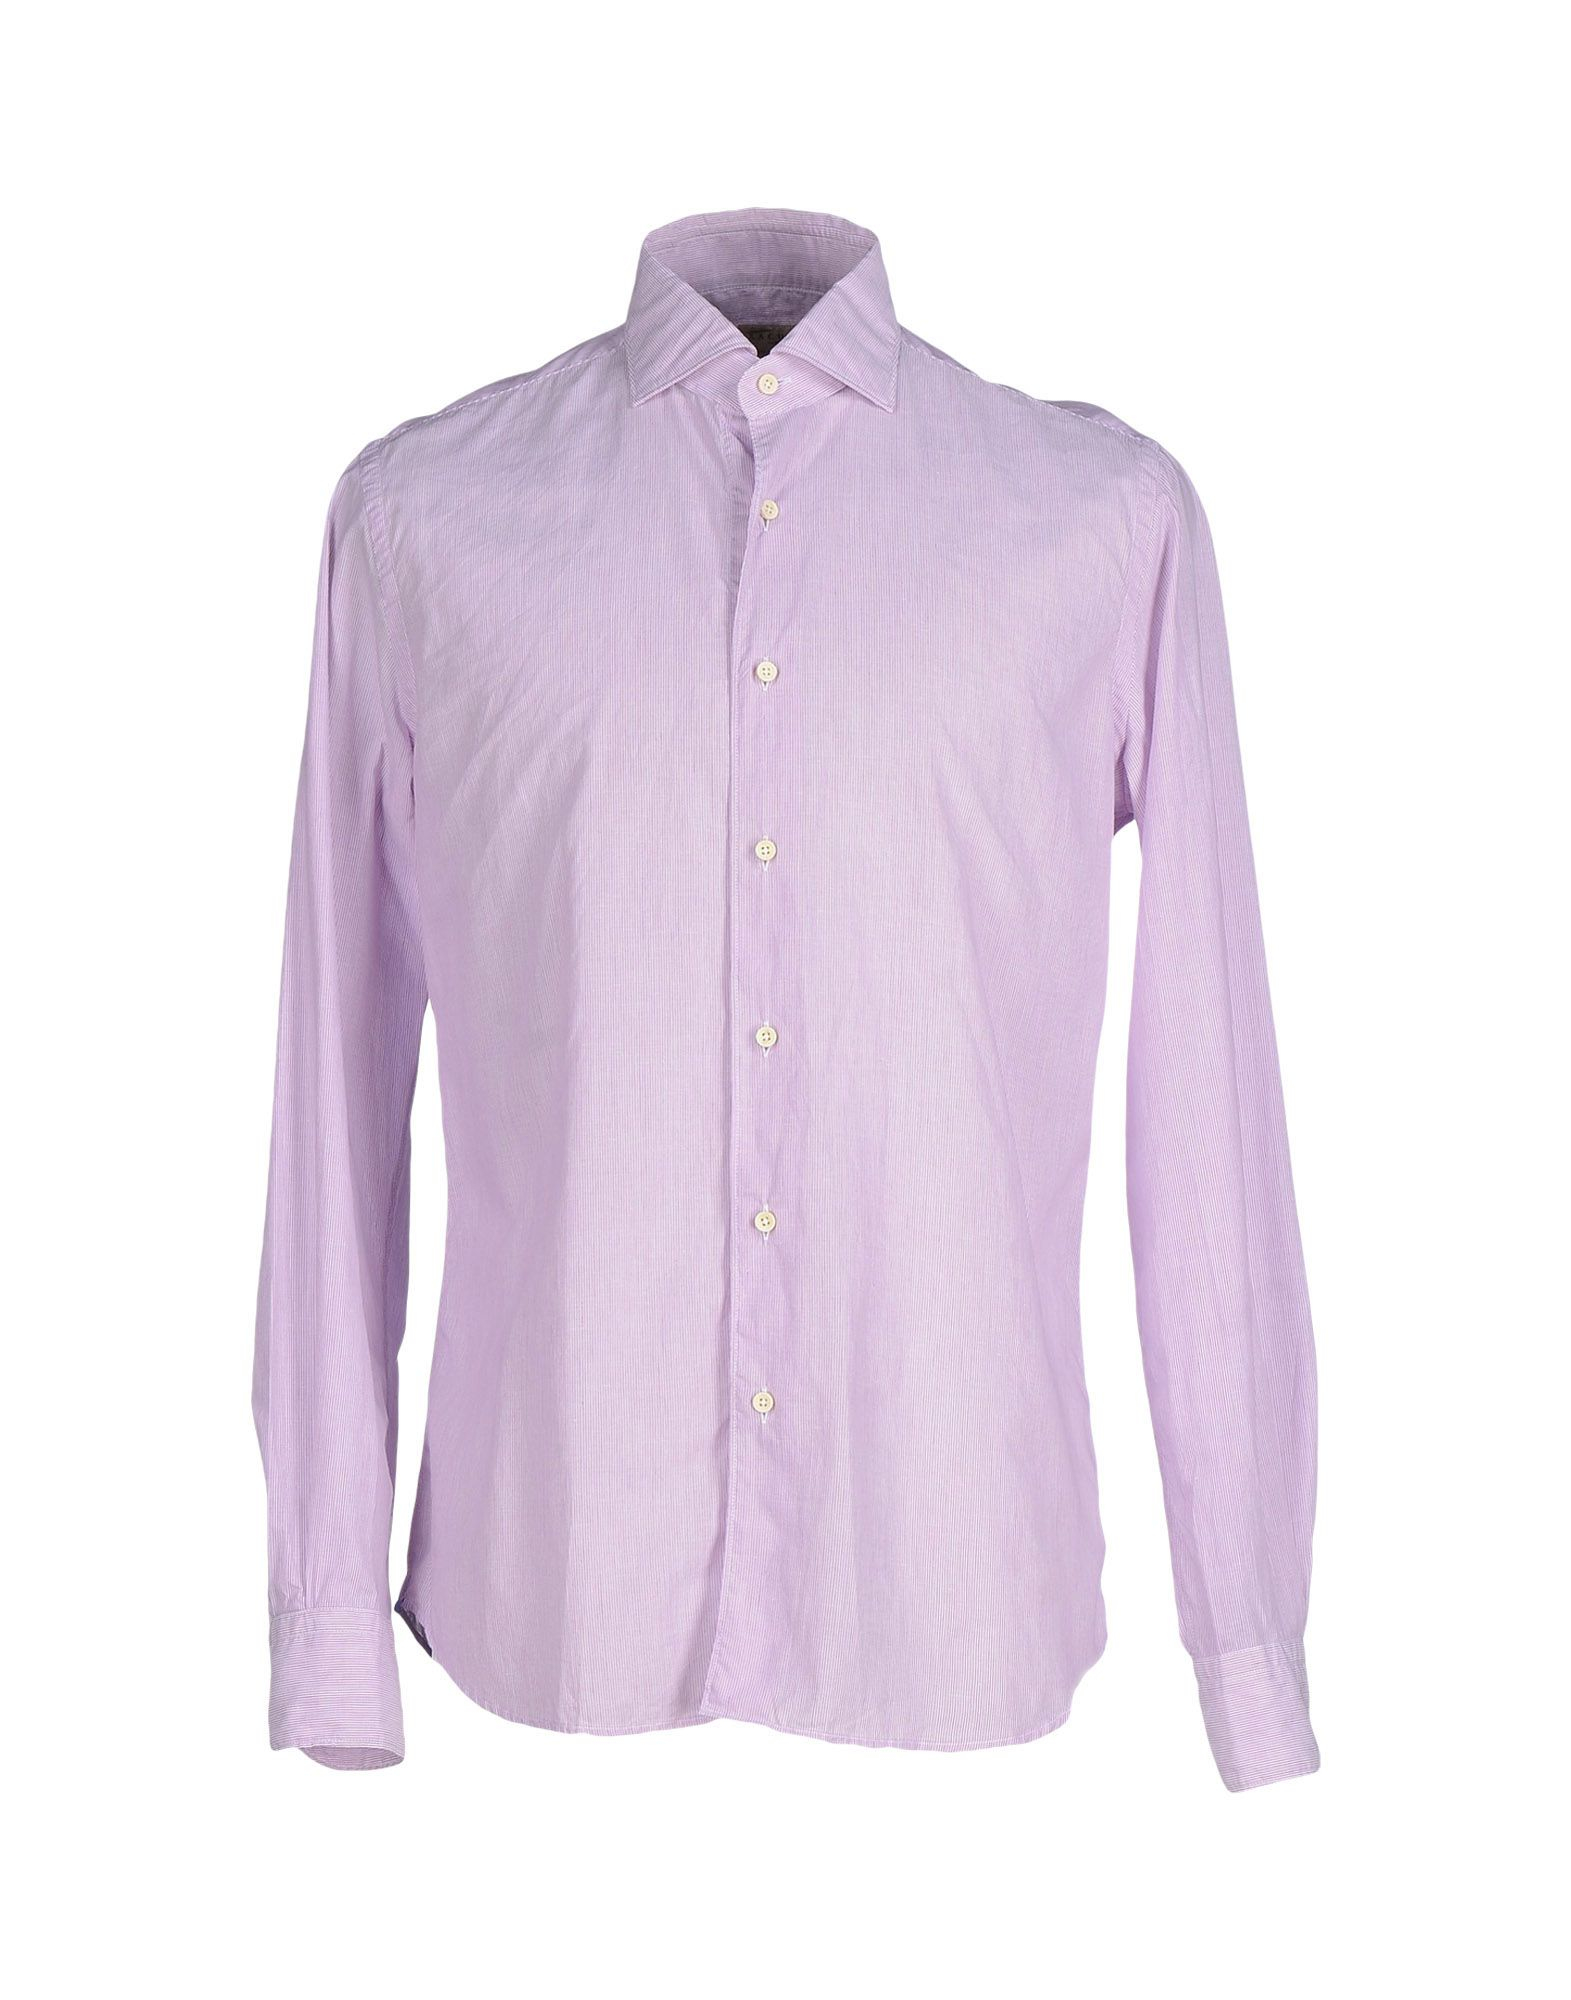 Xacus Shirt In Purple For Men Light Purple Save 60 Lyst